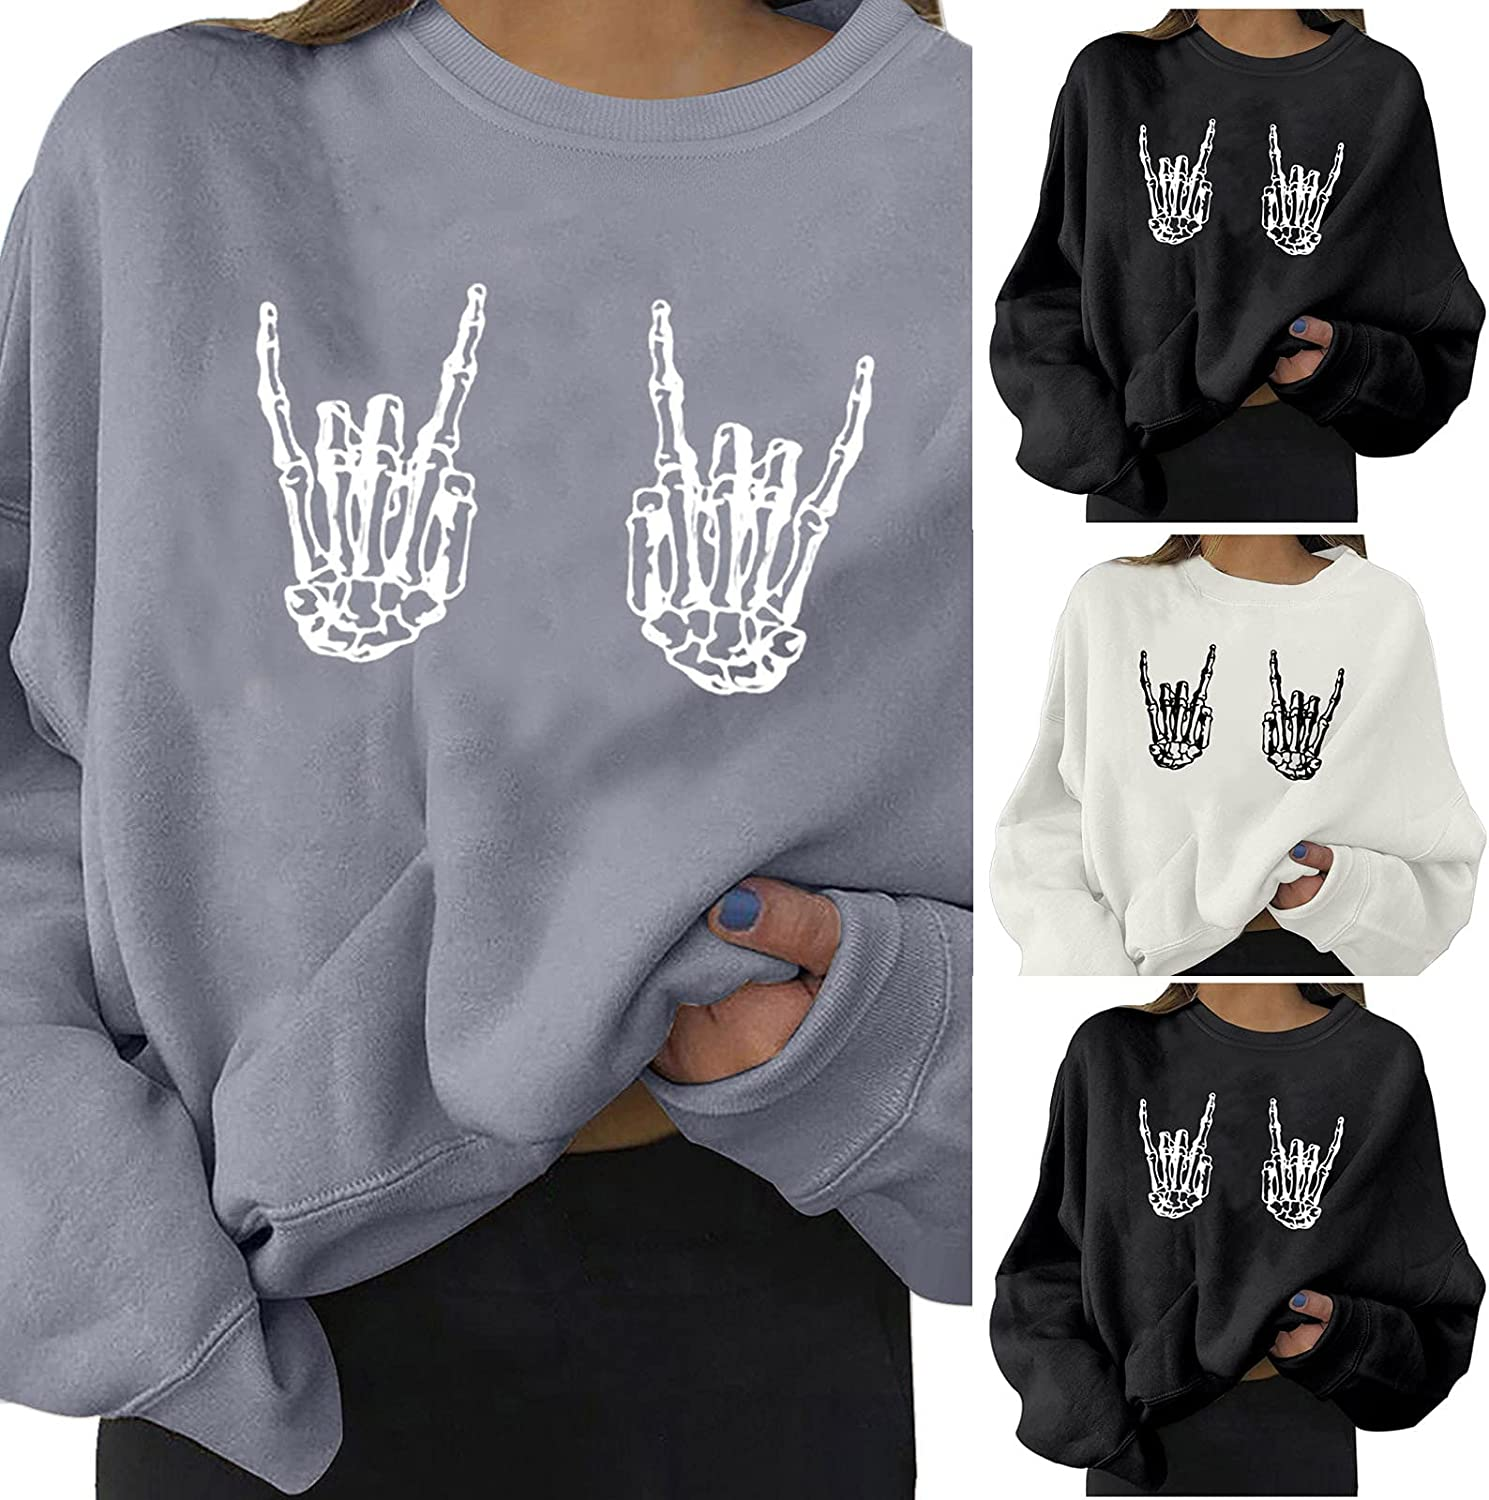 Women's Skeleton Hand Halloween Sweatshirts Long Sleeve Workout Casual Pullovers Fashion Lightweight Boatneck Blouses